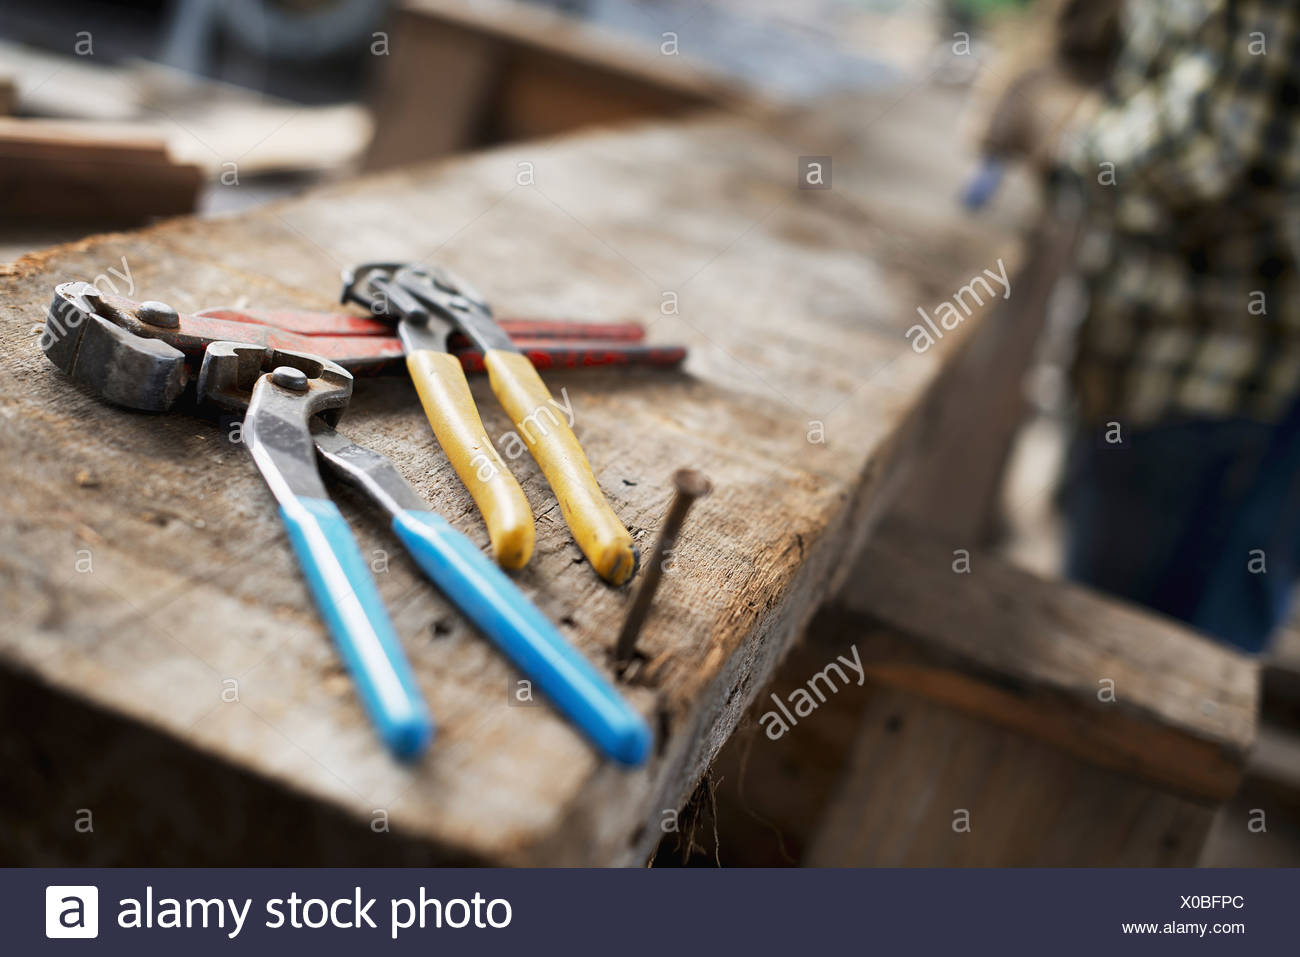 A reclaimed lumber workshop A person at a workbench and tools grippers and pliers lined up on a plank of wood - Stock Image